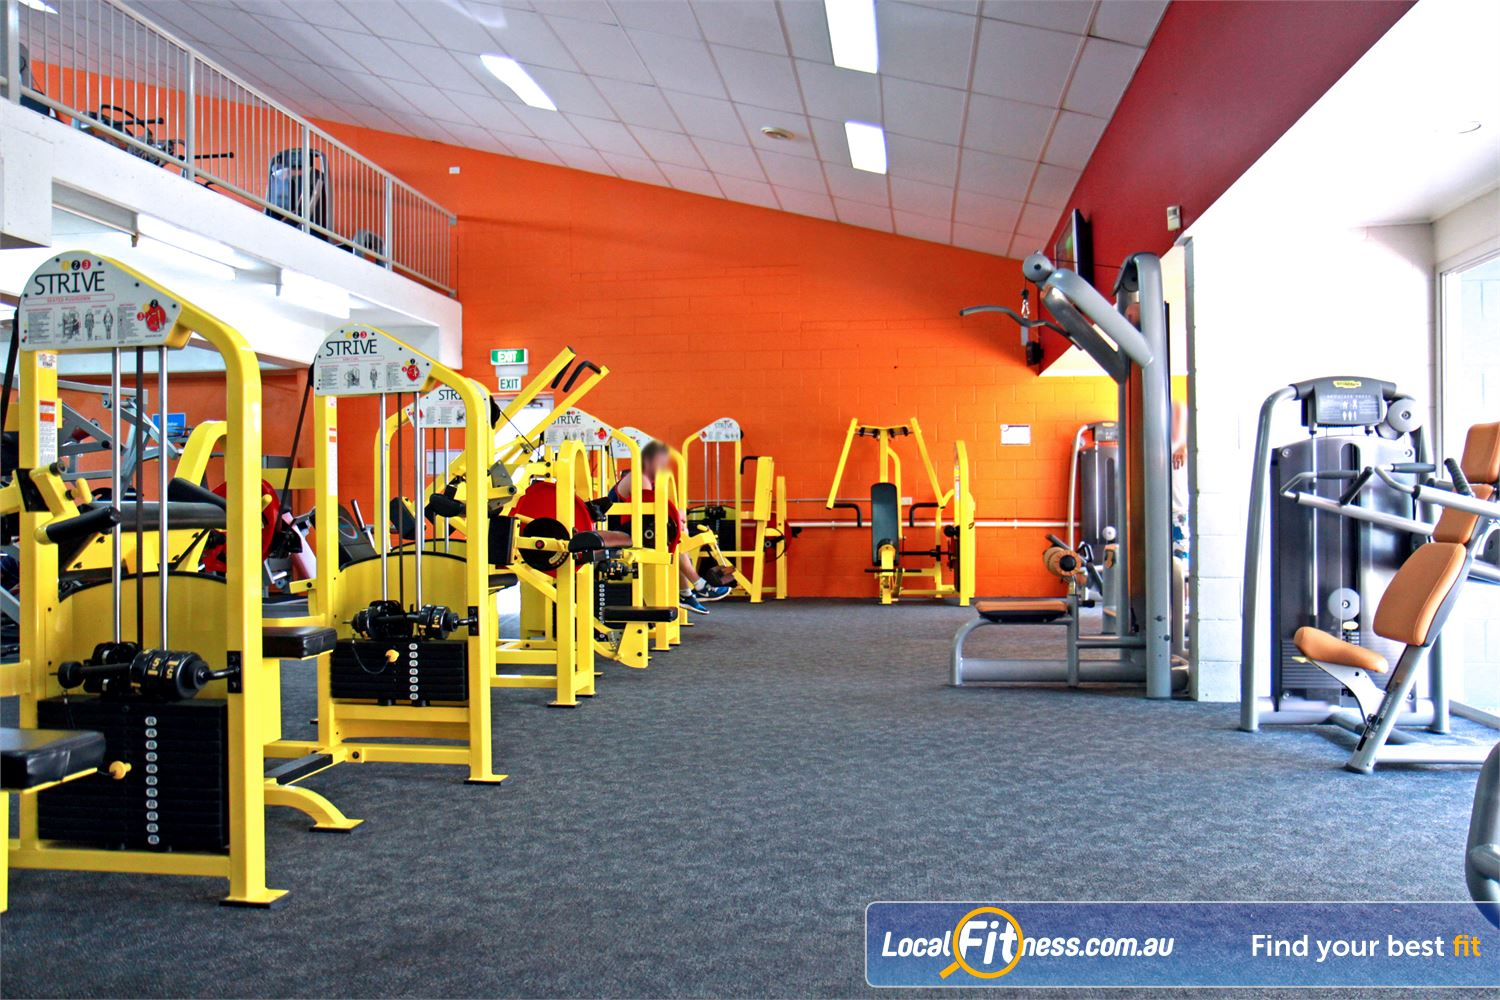 Goodlife Health Clubs Morningside Our Morningside gym includes the innovative 1-2-3 Strive strength series.